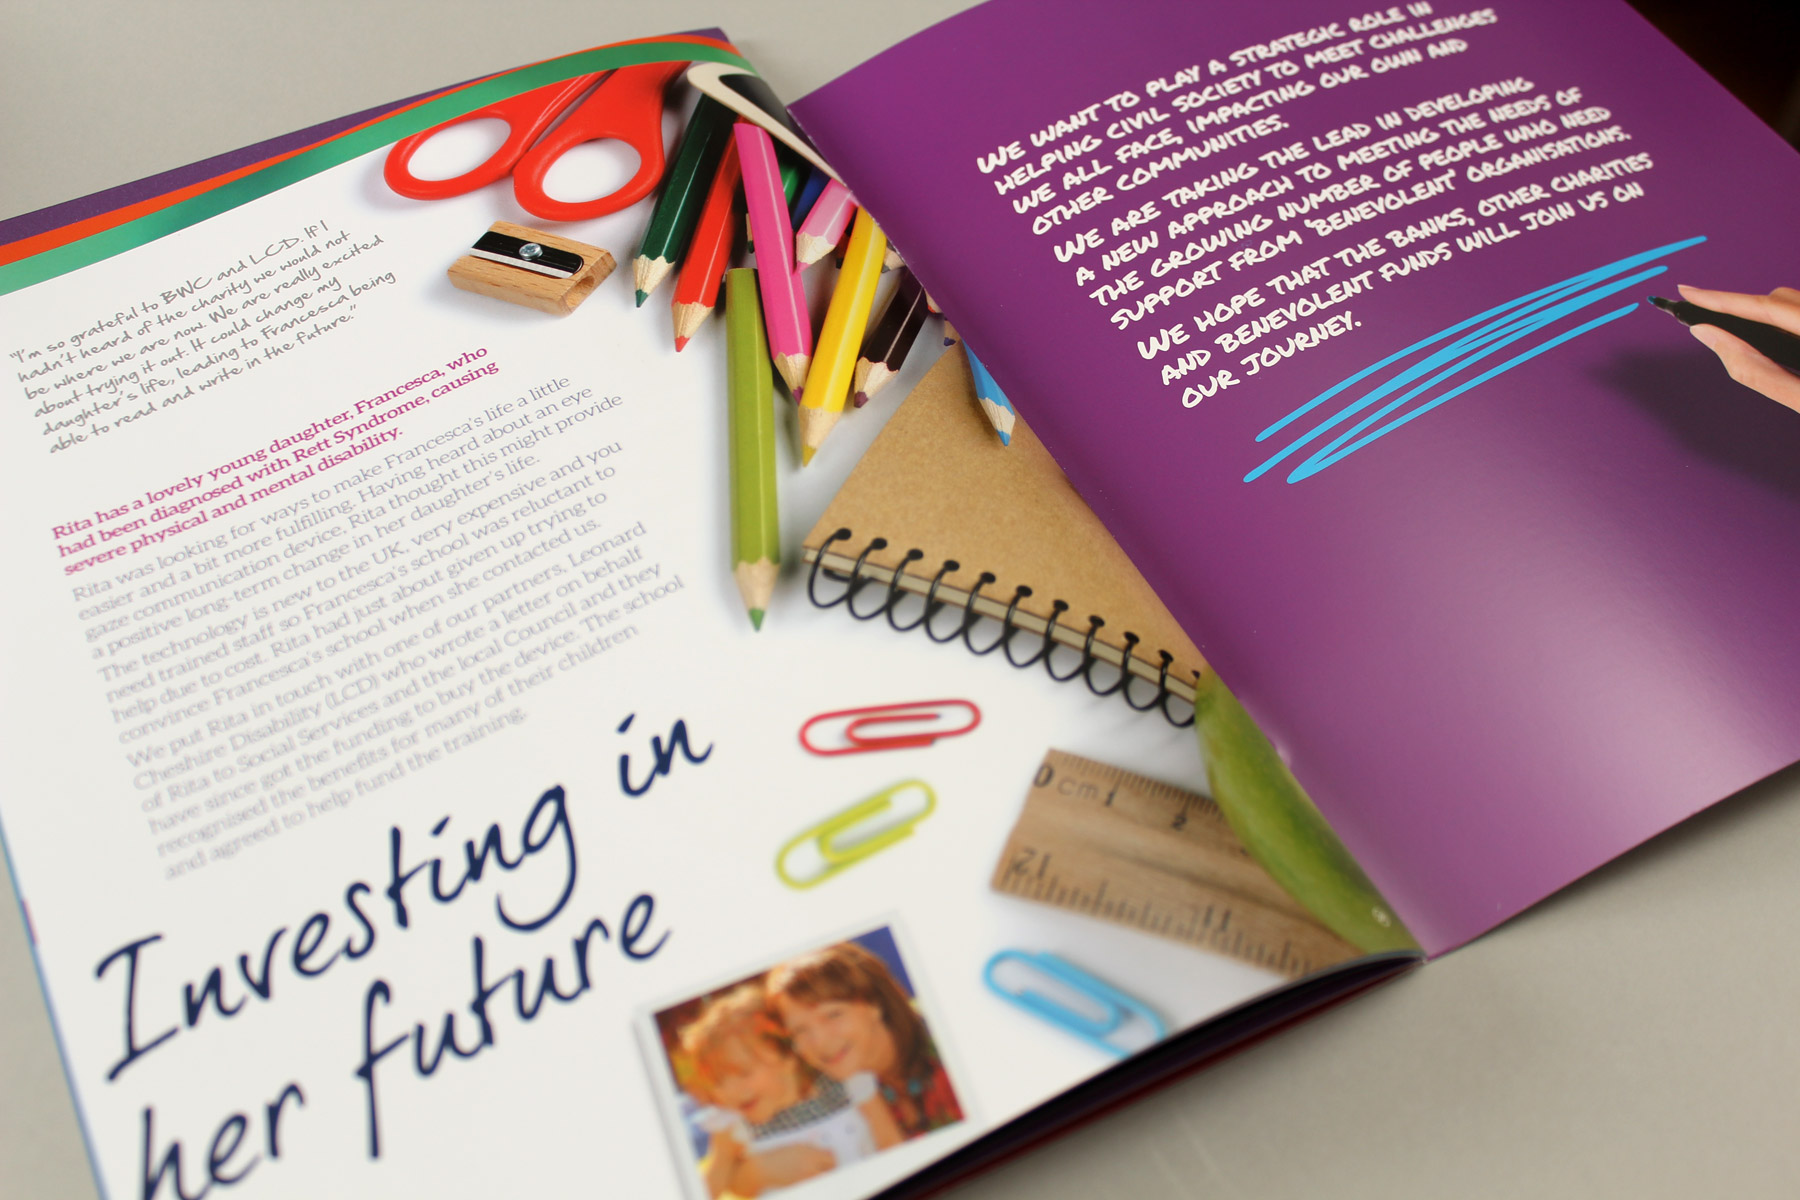 The print communications have been designed with a loose grid format, which creates an overall impression of friendliness